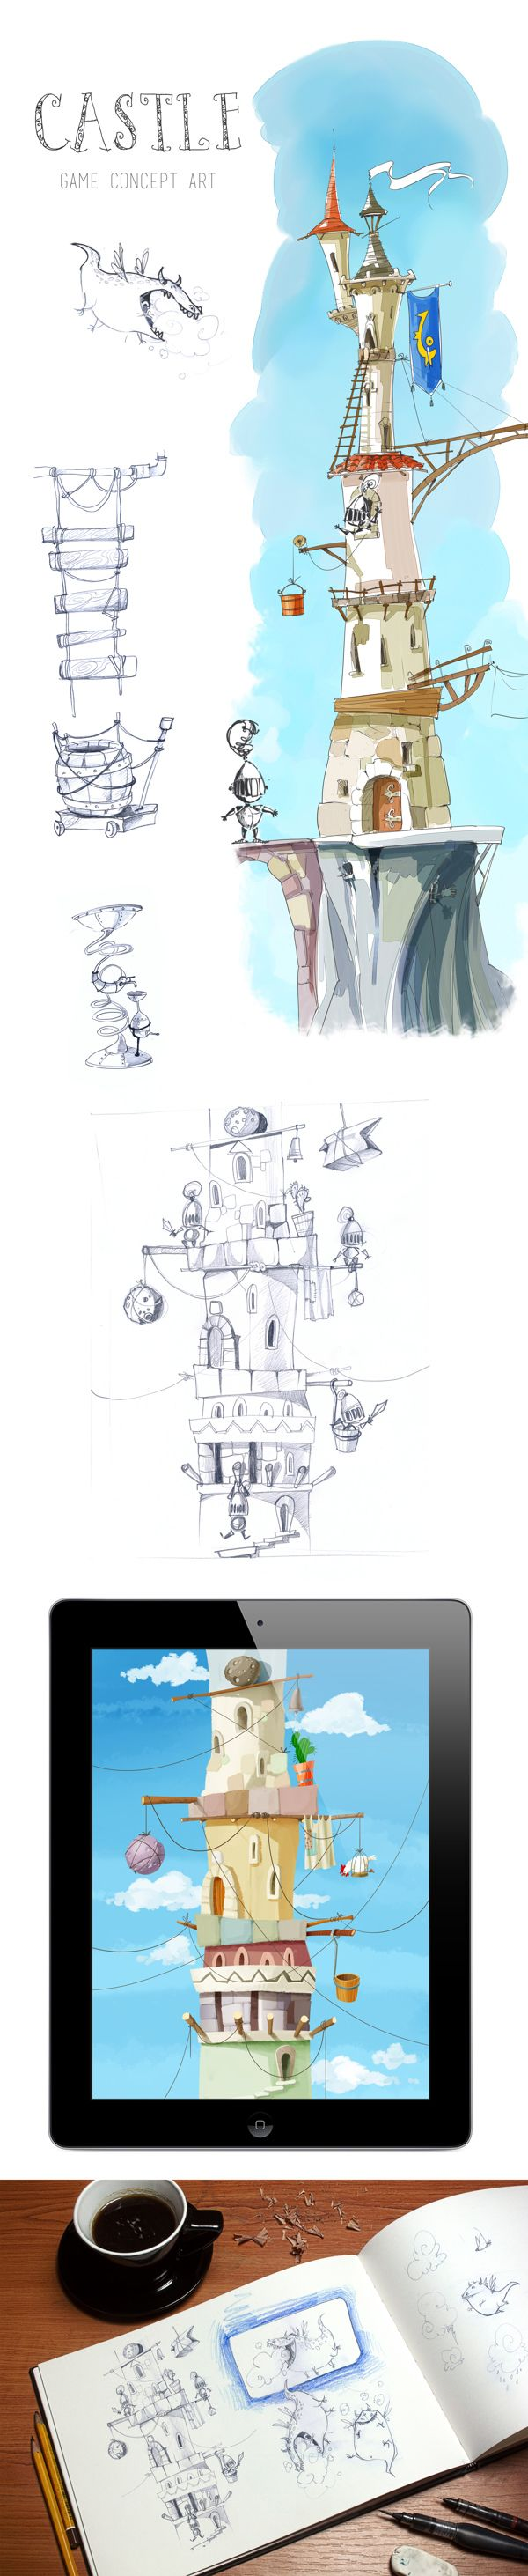 Castle: Concept by Just Games.